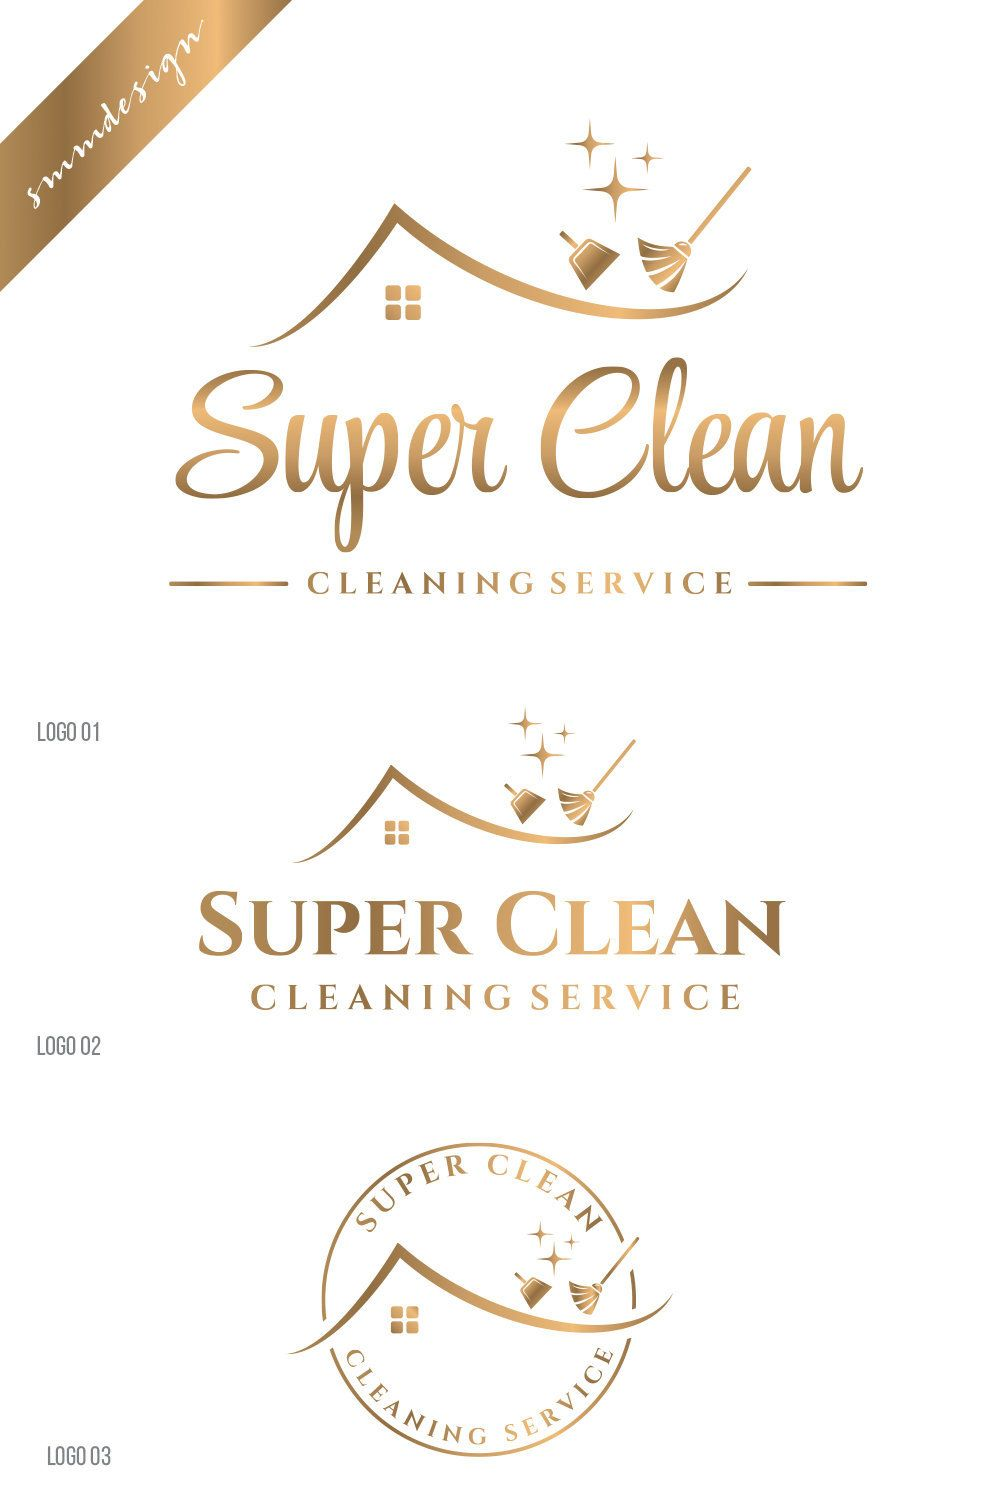 Cleaning Logo Design Premade Logo Cleaning Service House Cleaning Maid Service House Cleaning Logo Cleaning Services Housekeeping 428 Cleaning Logo Cleaning Service Logo Cleaning Service